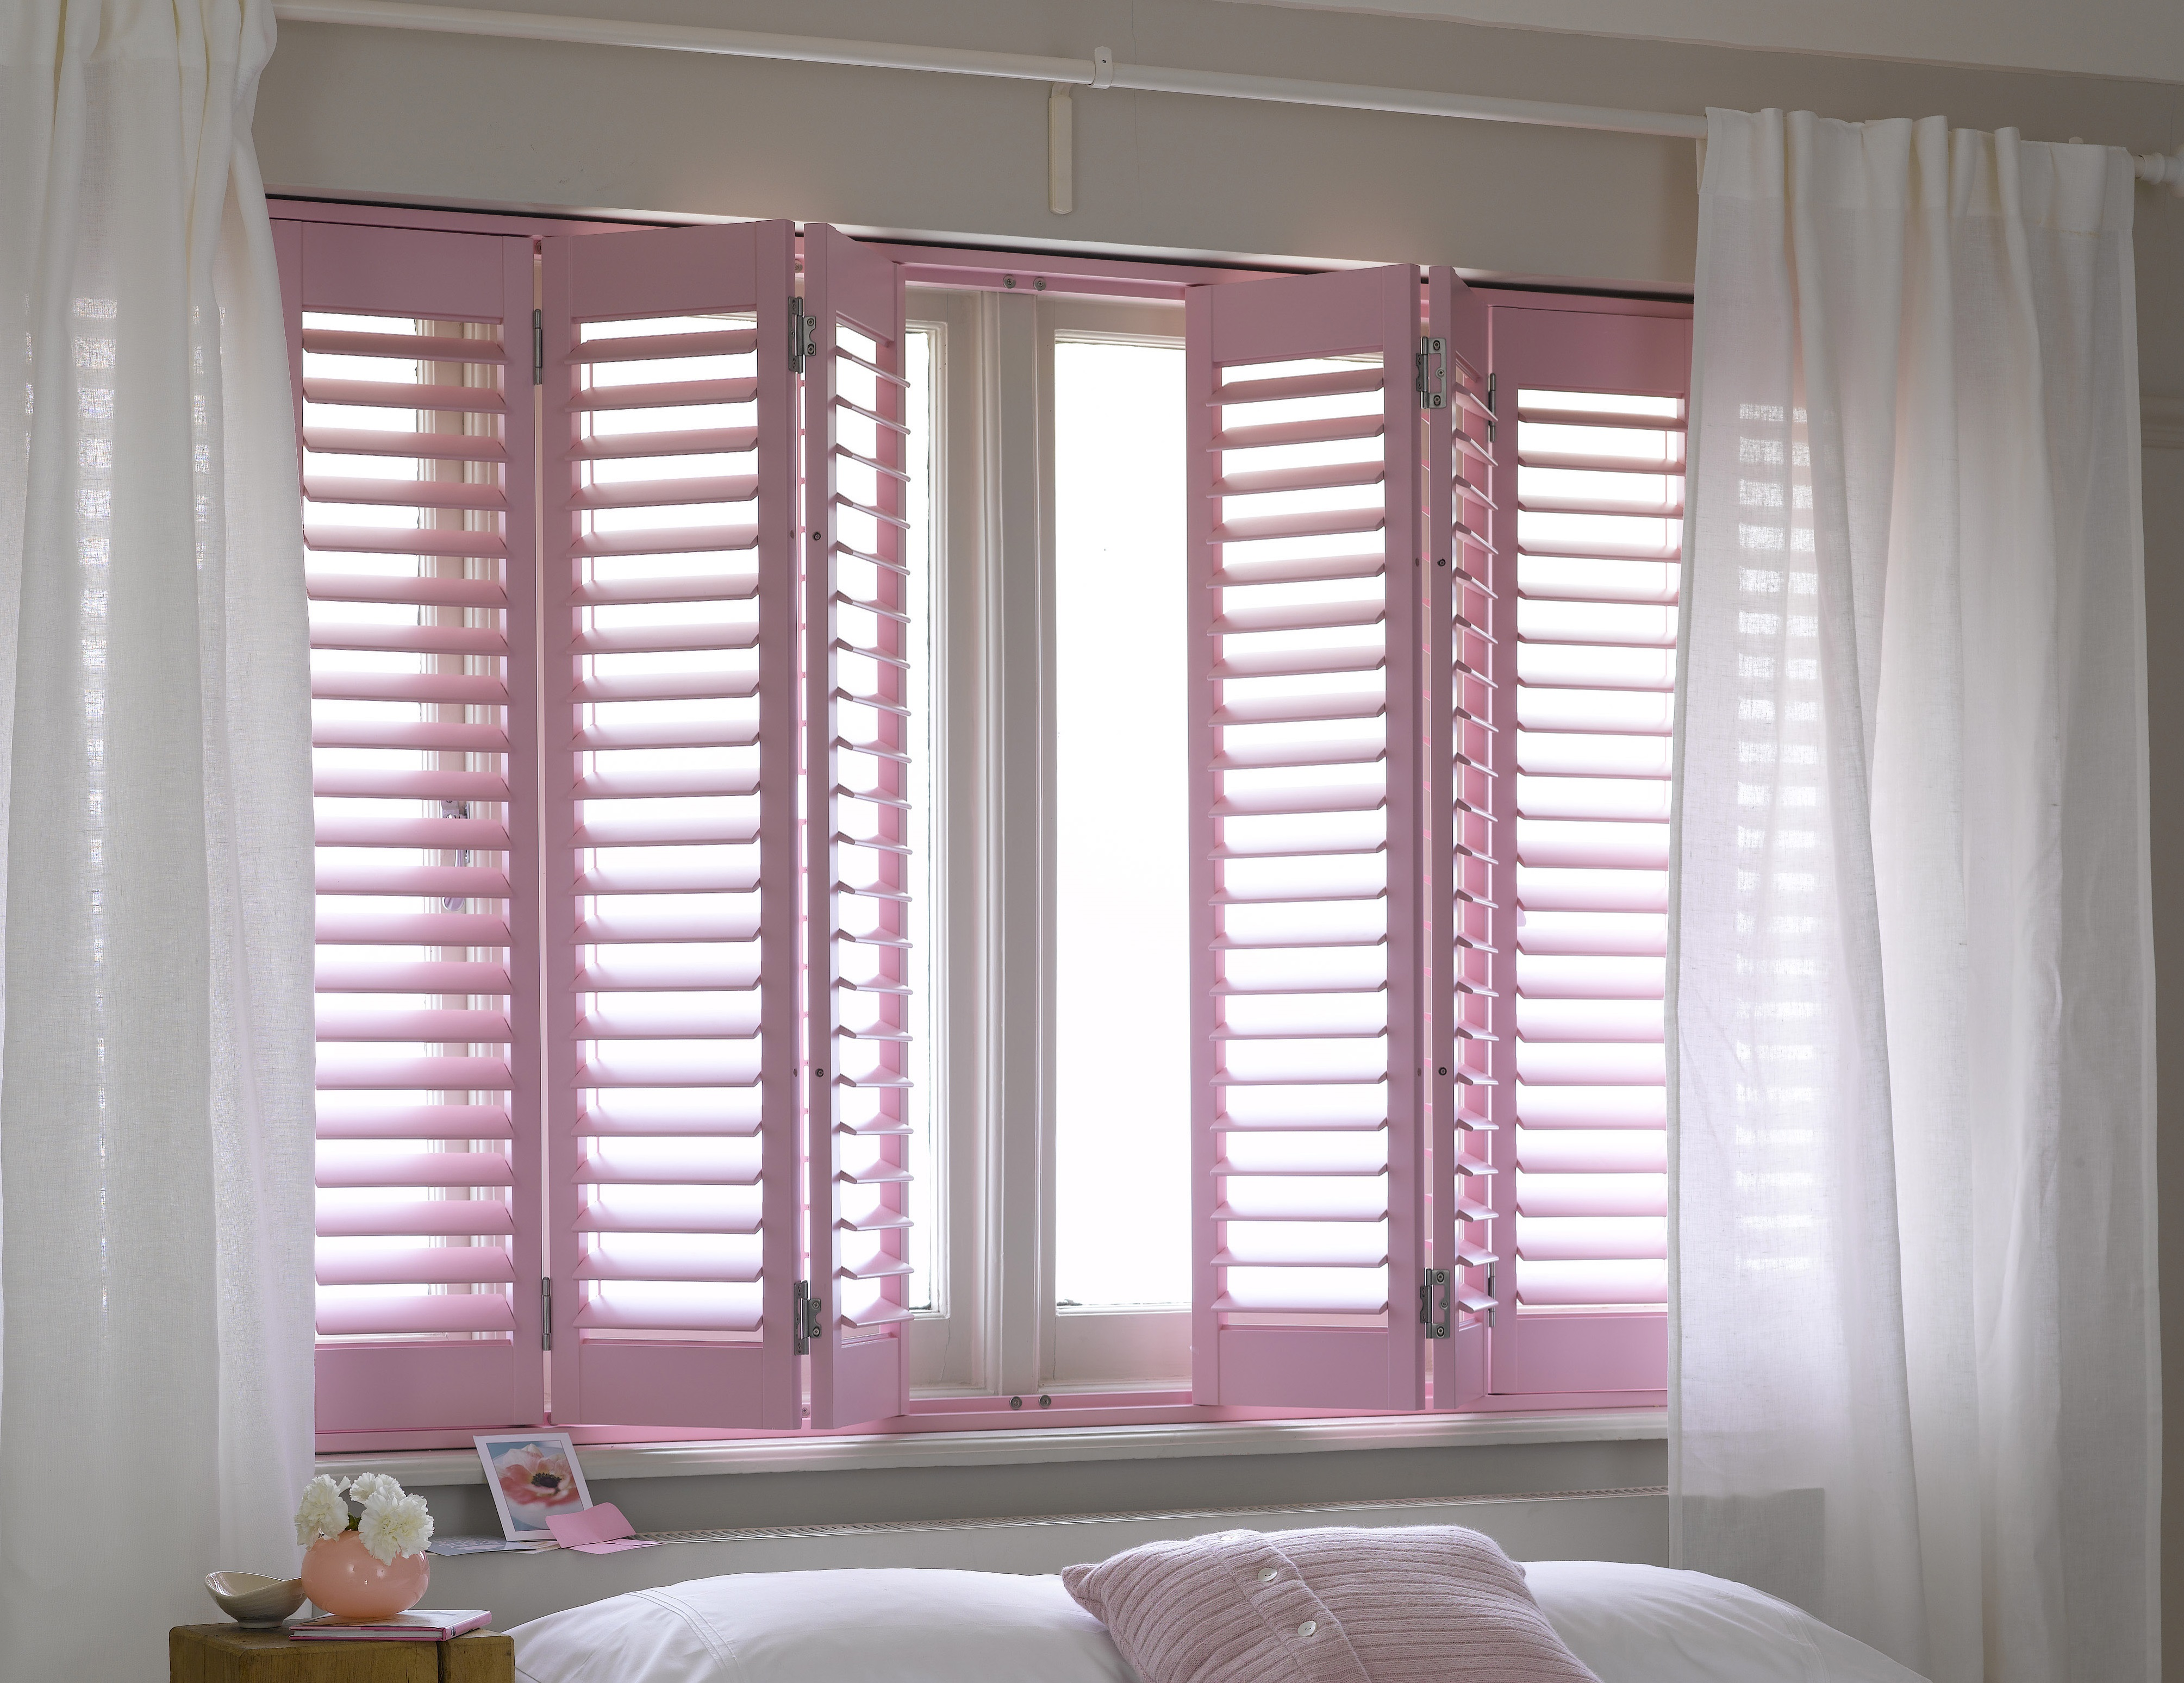 Reducing Hayfever Allergens with Plantation Shutters